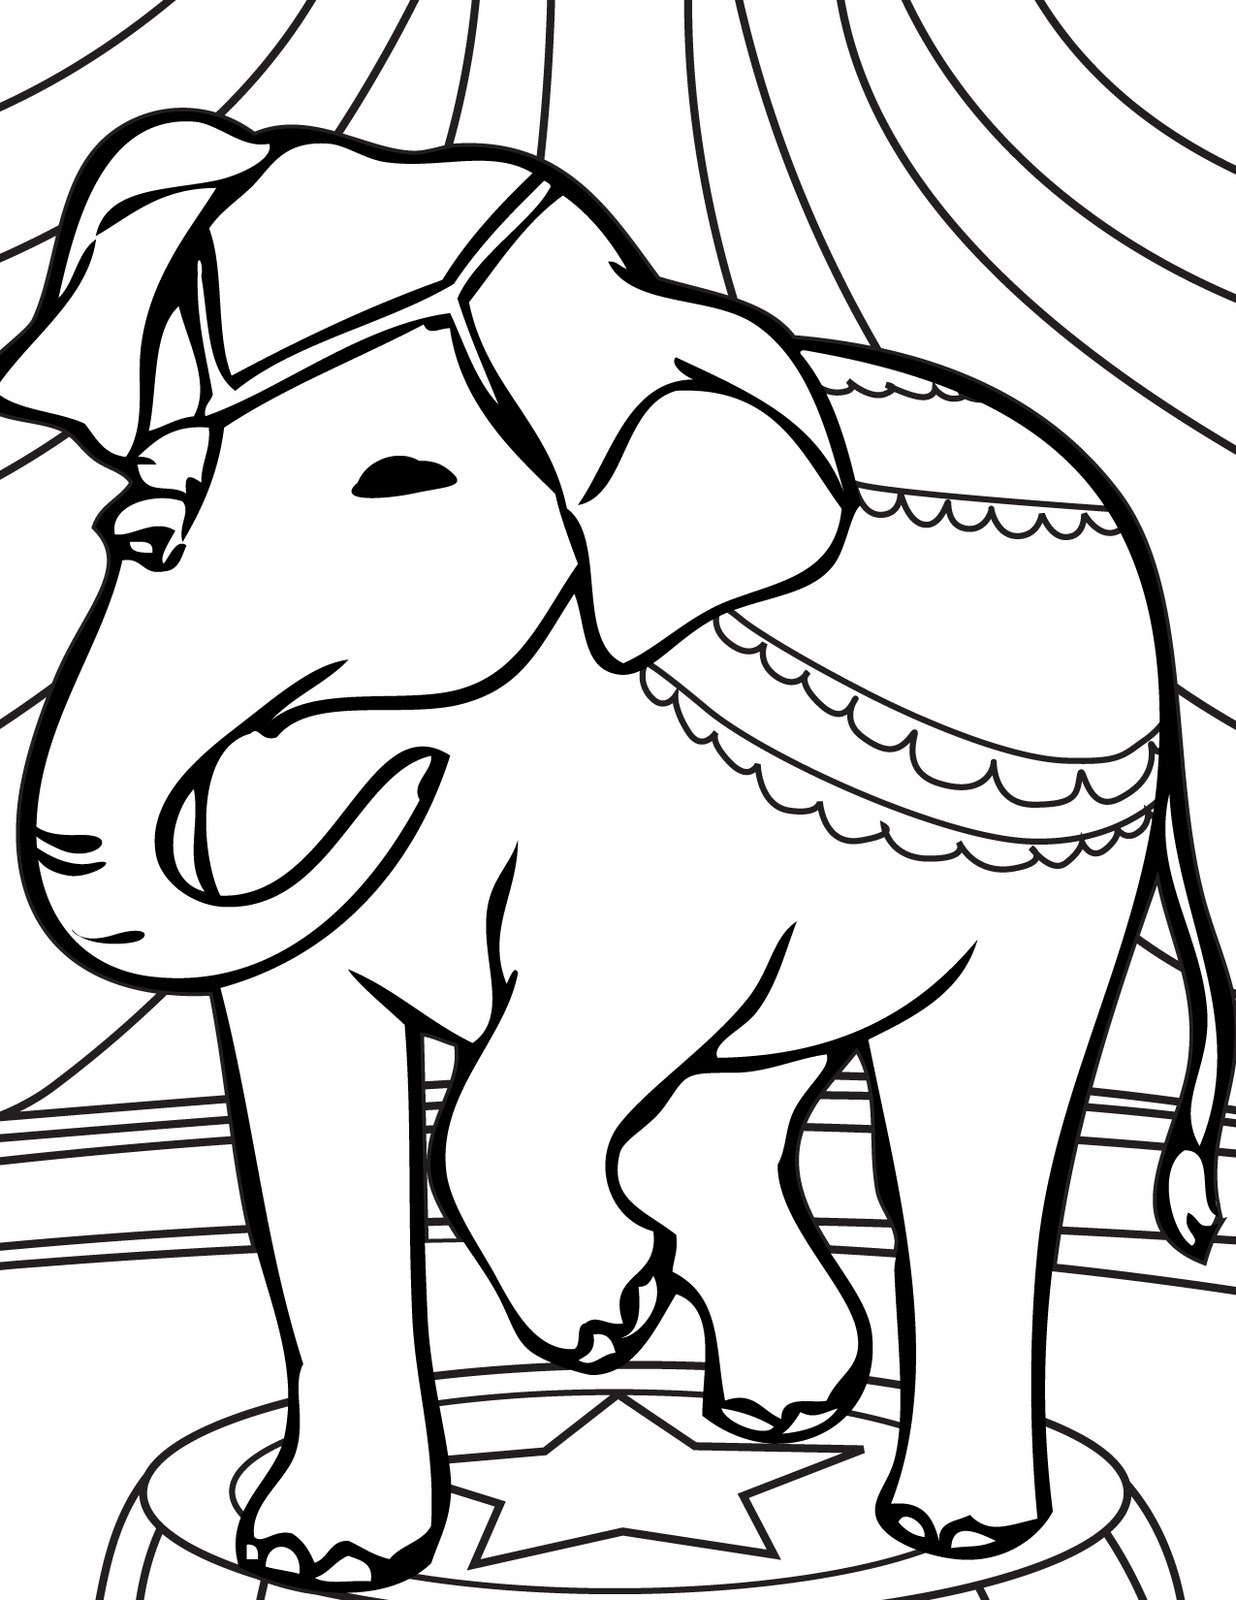 Circus Elephant Coloring Pages Ideas To Kids Circus Elephant Coloring Page